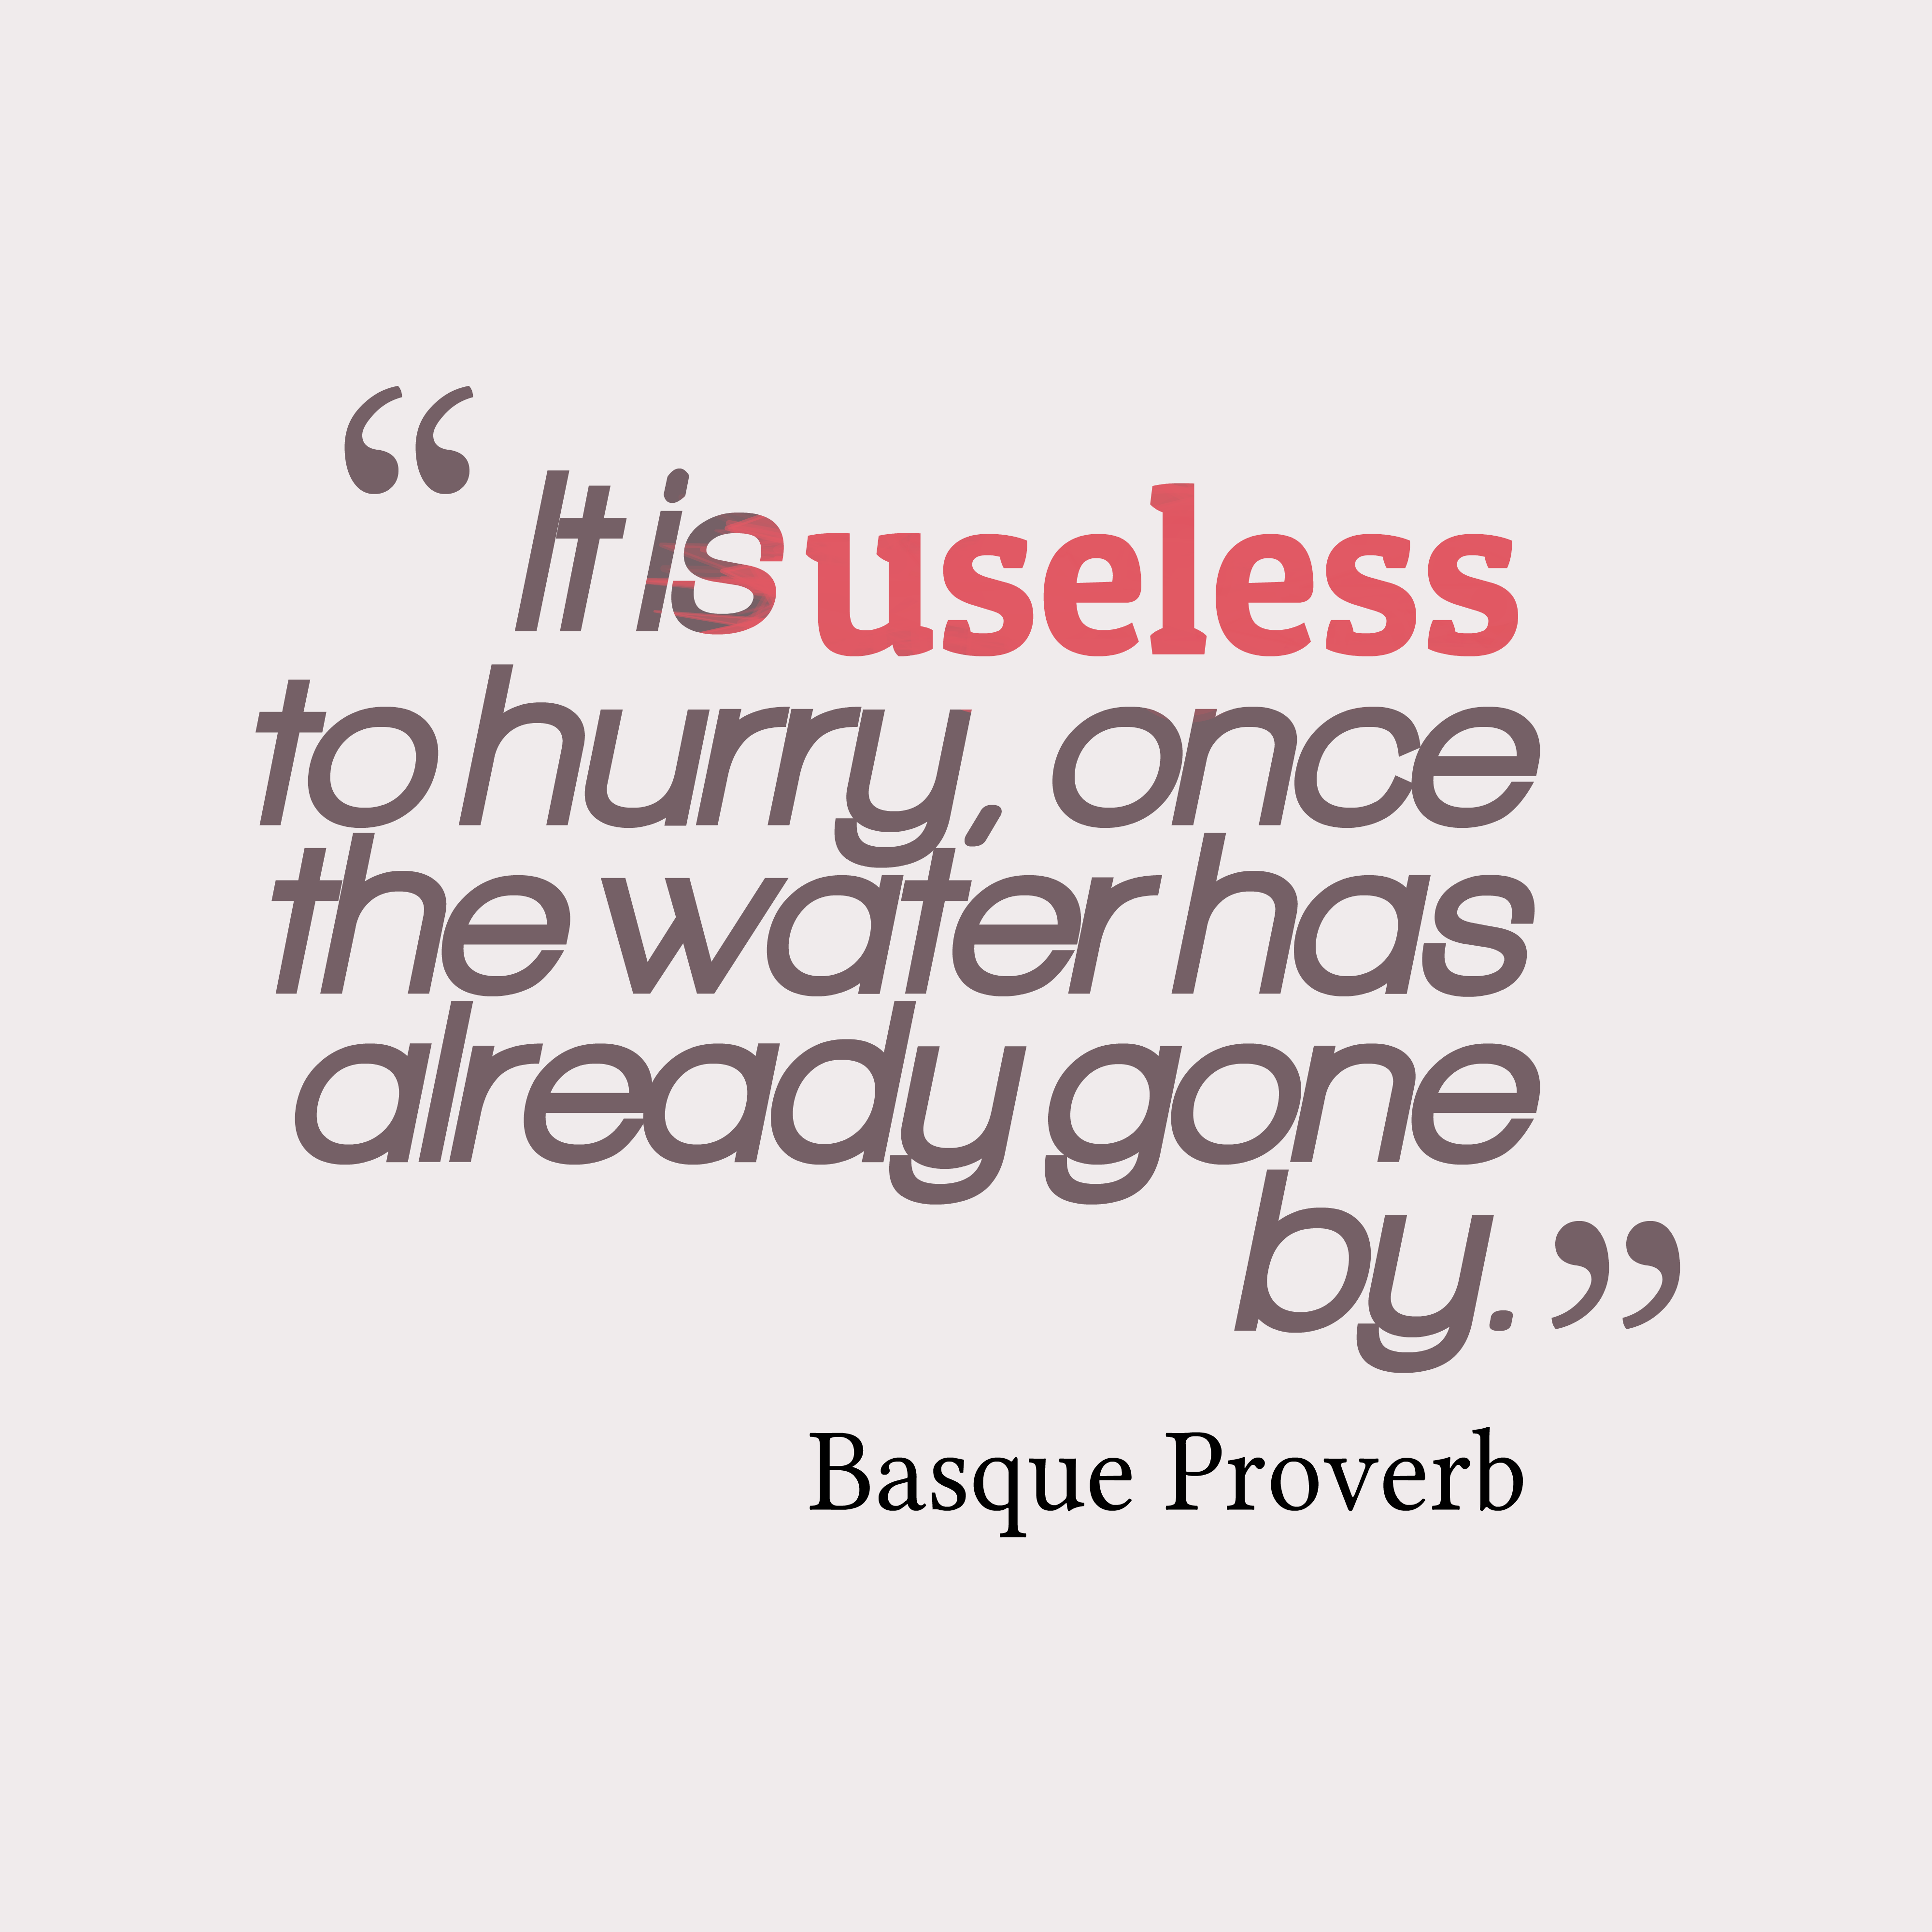 Quotes image of It is useless to hurry, once the water has already gone by.